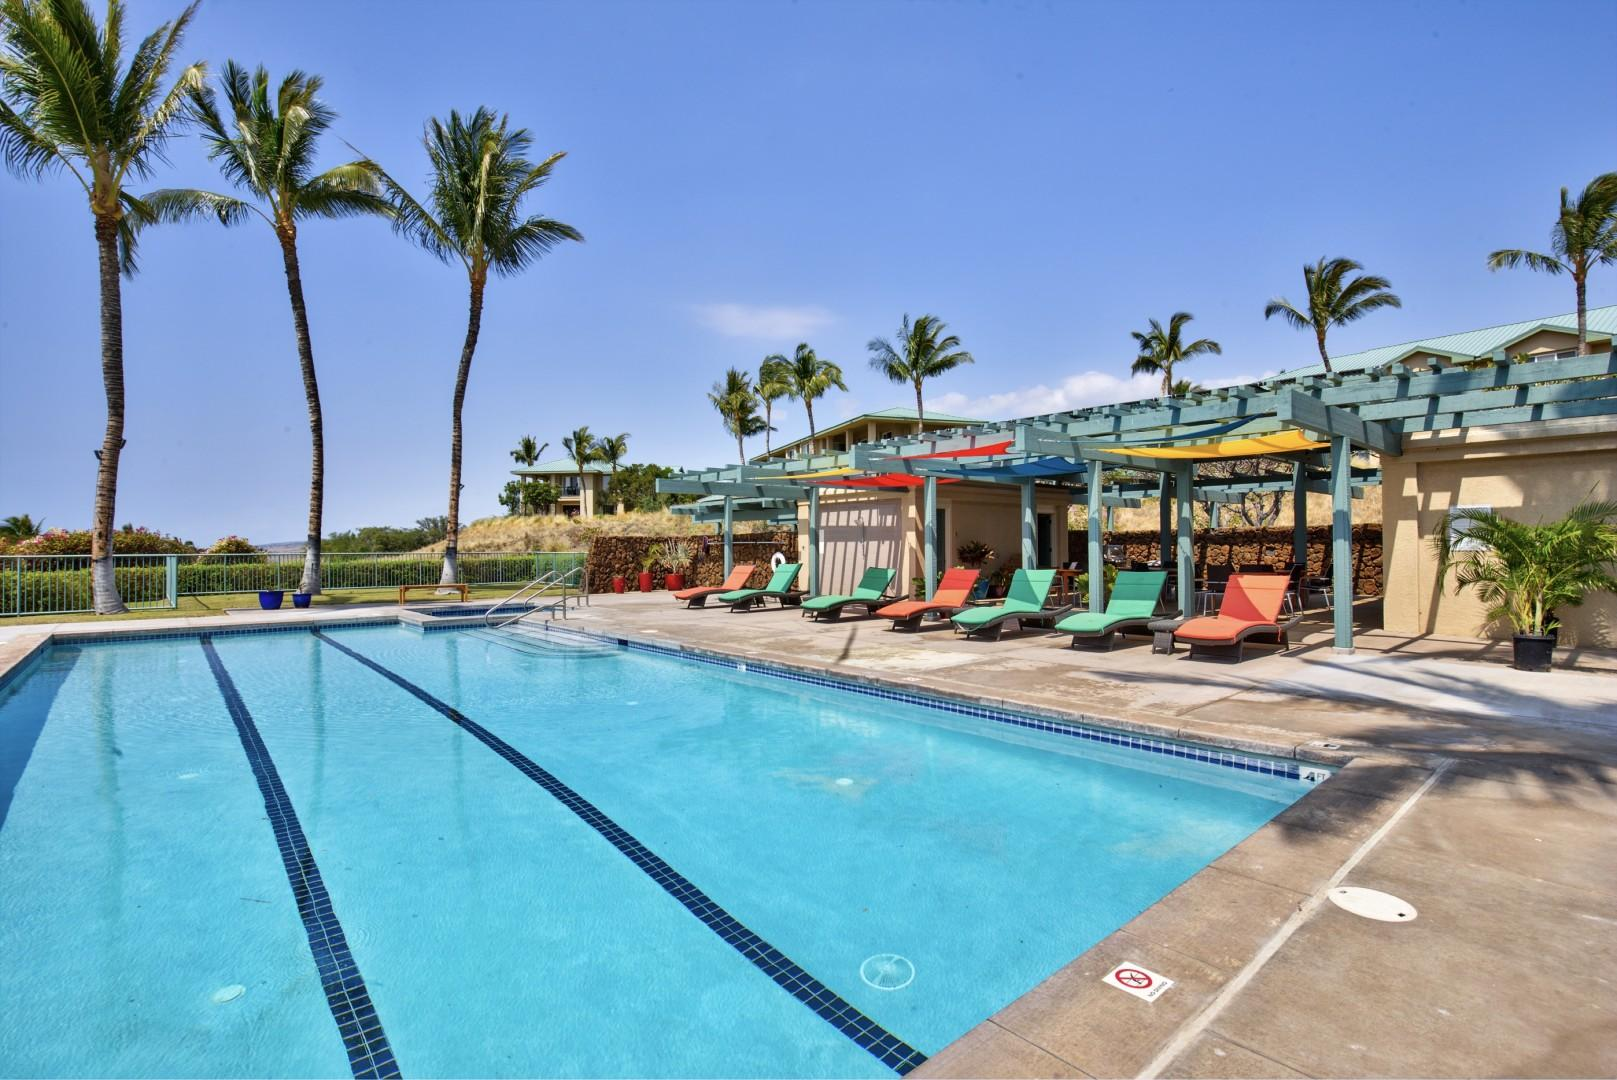 Kumulani amenities center with large lap pool, jacuzzi, loungers, BBQ grills, andcovered picnic area.